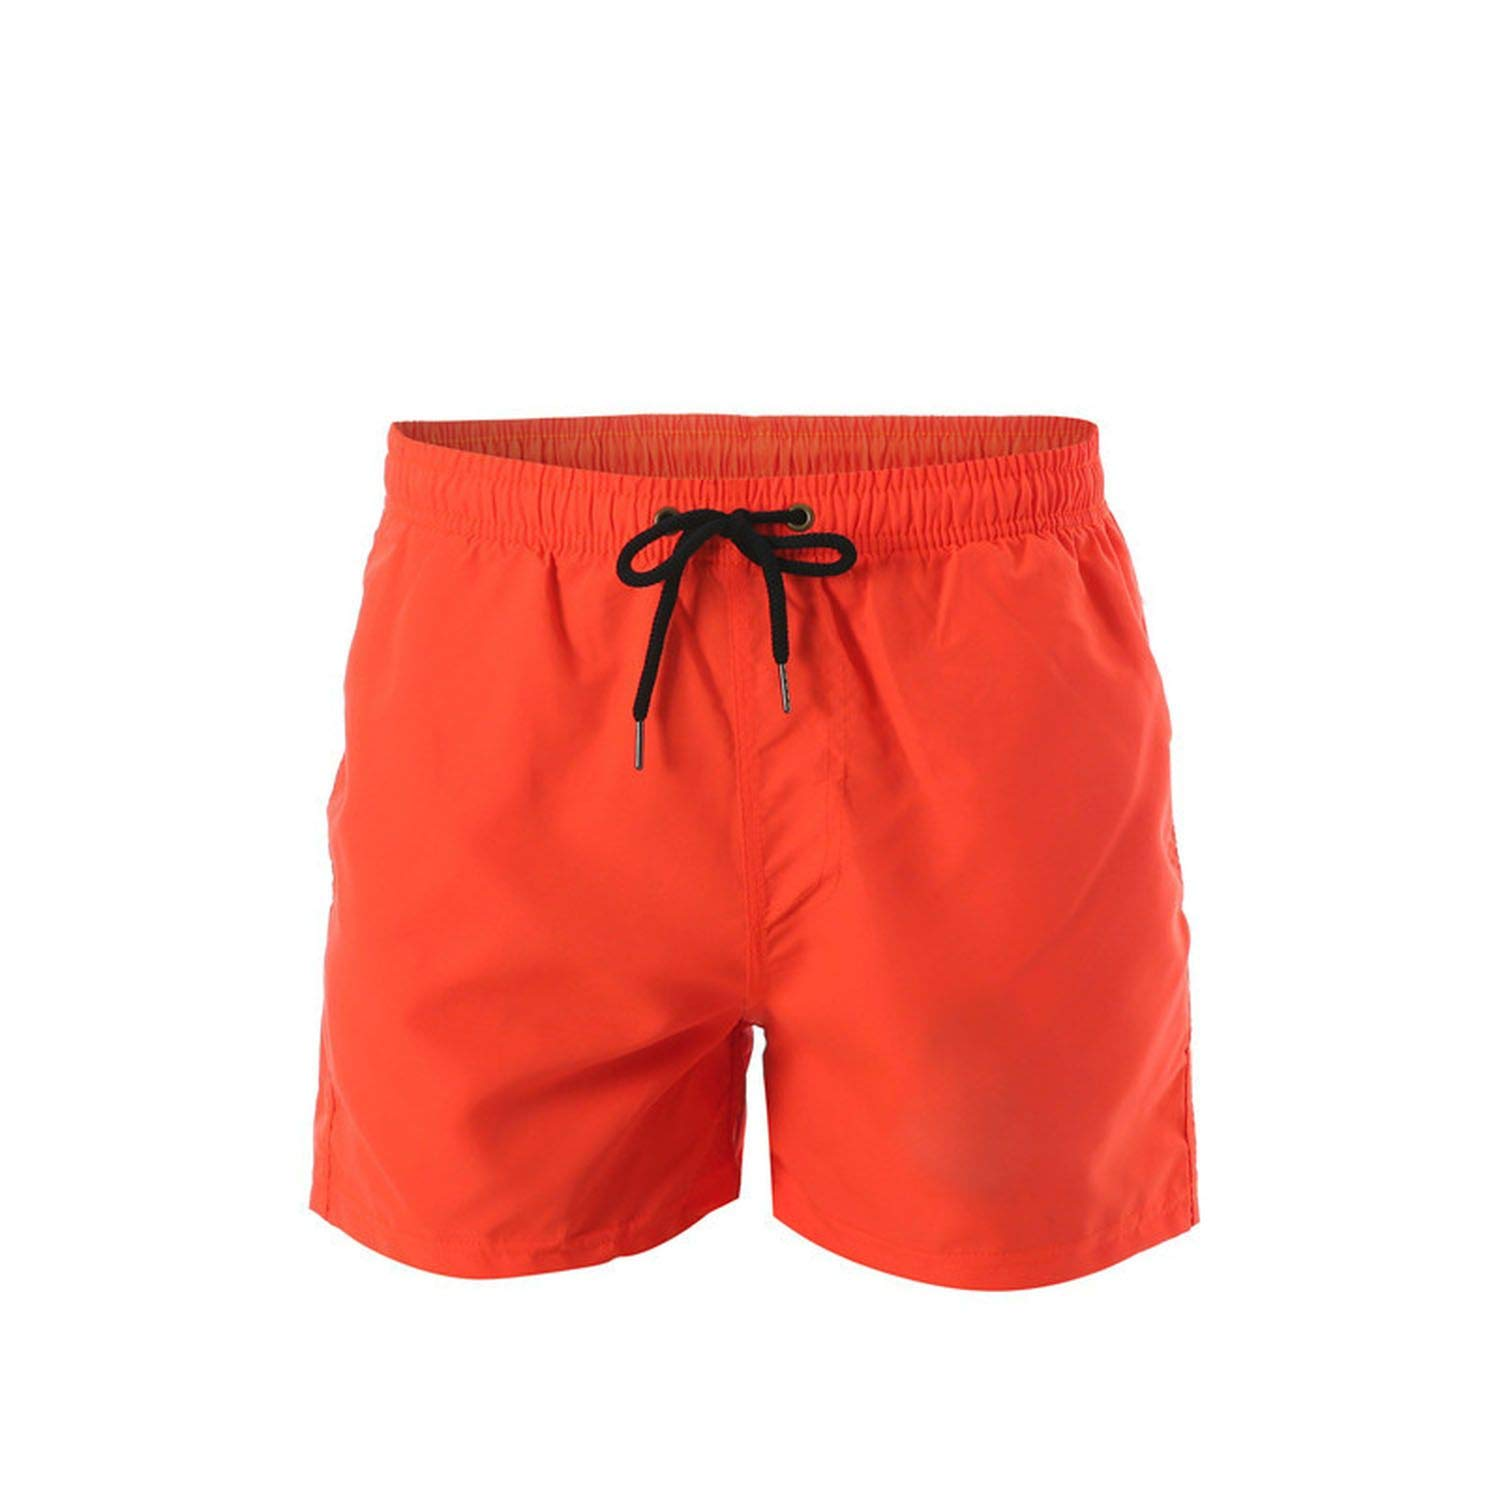 haode Mens Swim Shorts Swimwear Trunks Beach Board Shorts Swimming Short Pants Swimsuits Mens Running Shorts Surfing Shorts